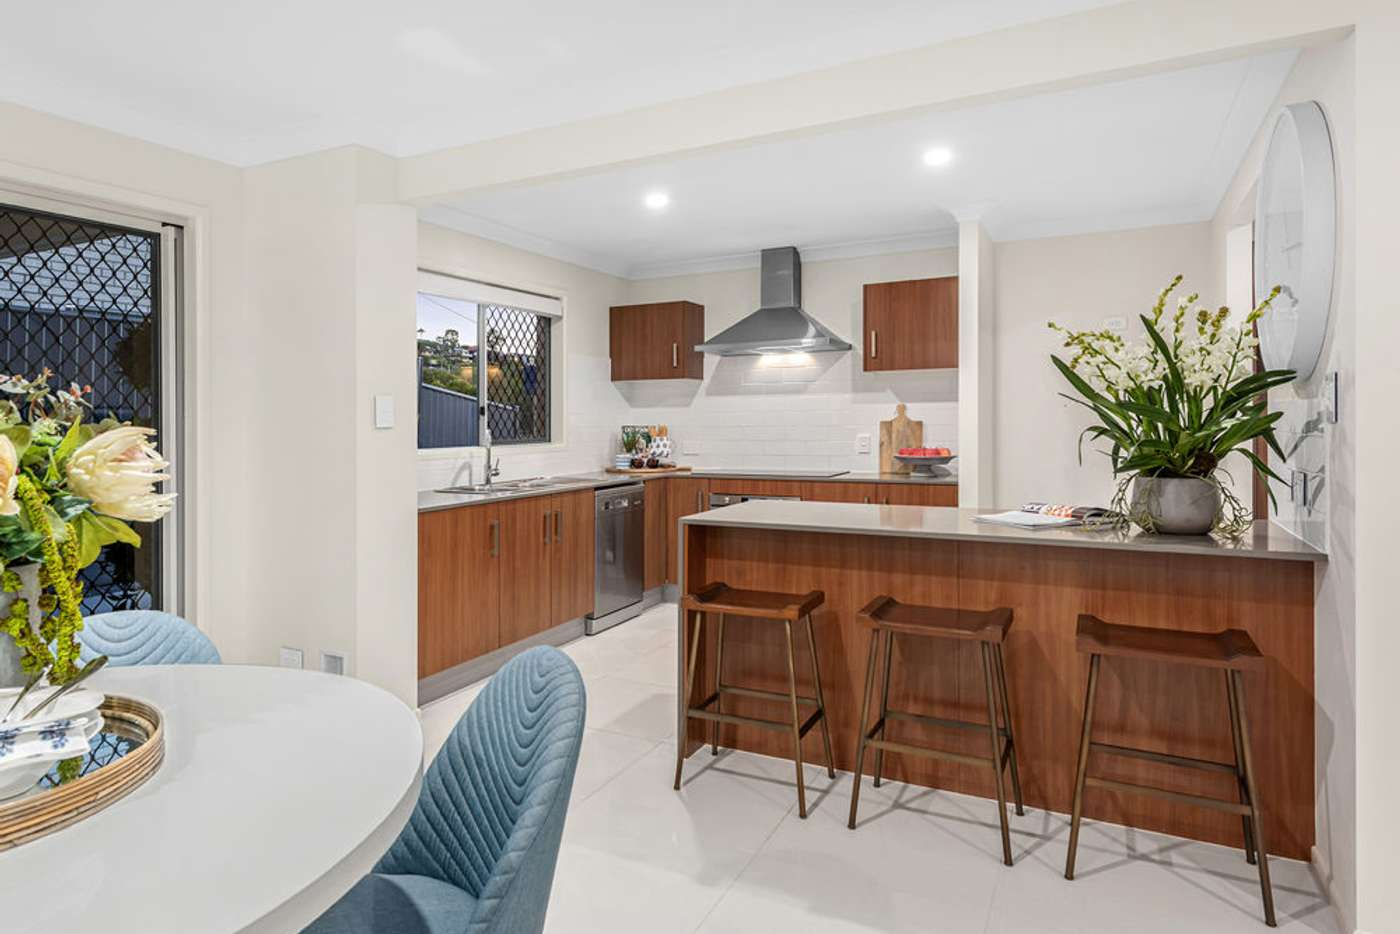 Sixth view of Homely house listing, 157 Winstanley Street, Carina Heights QLD 4152